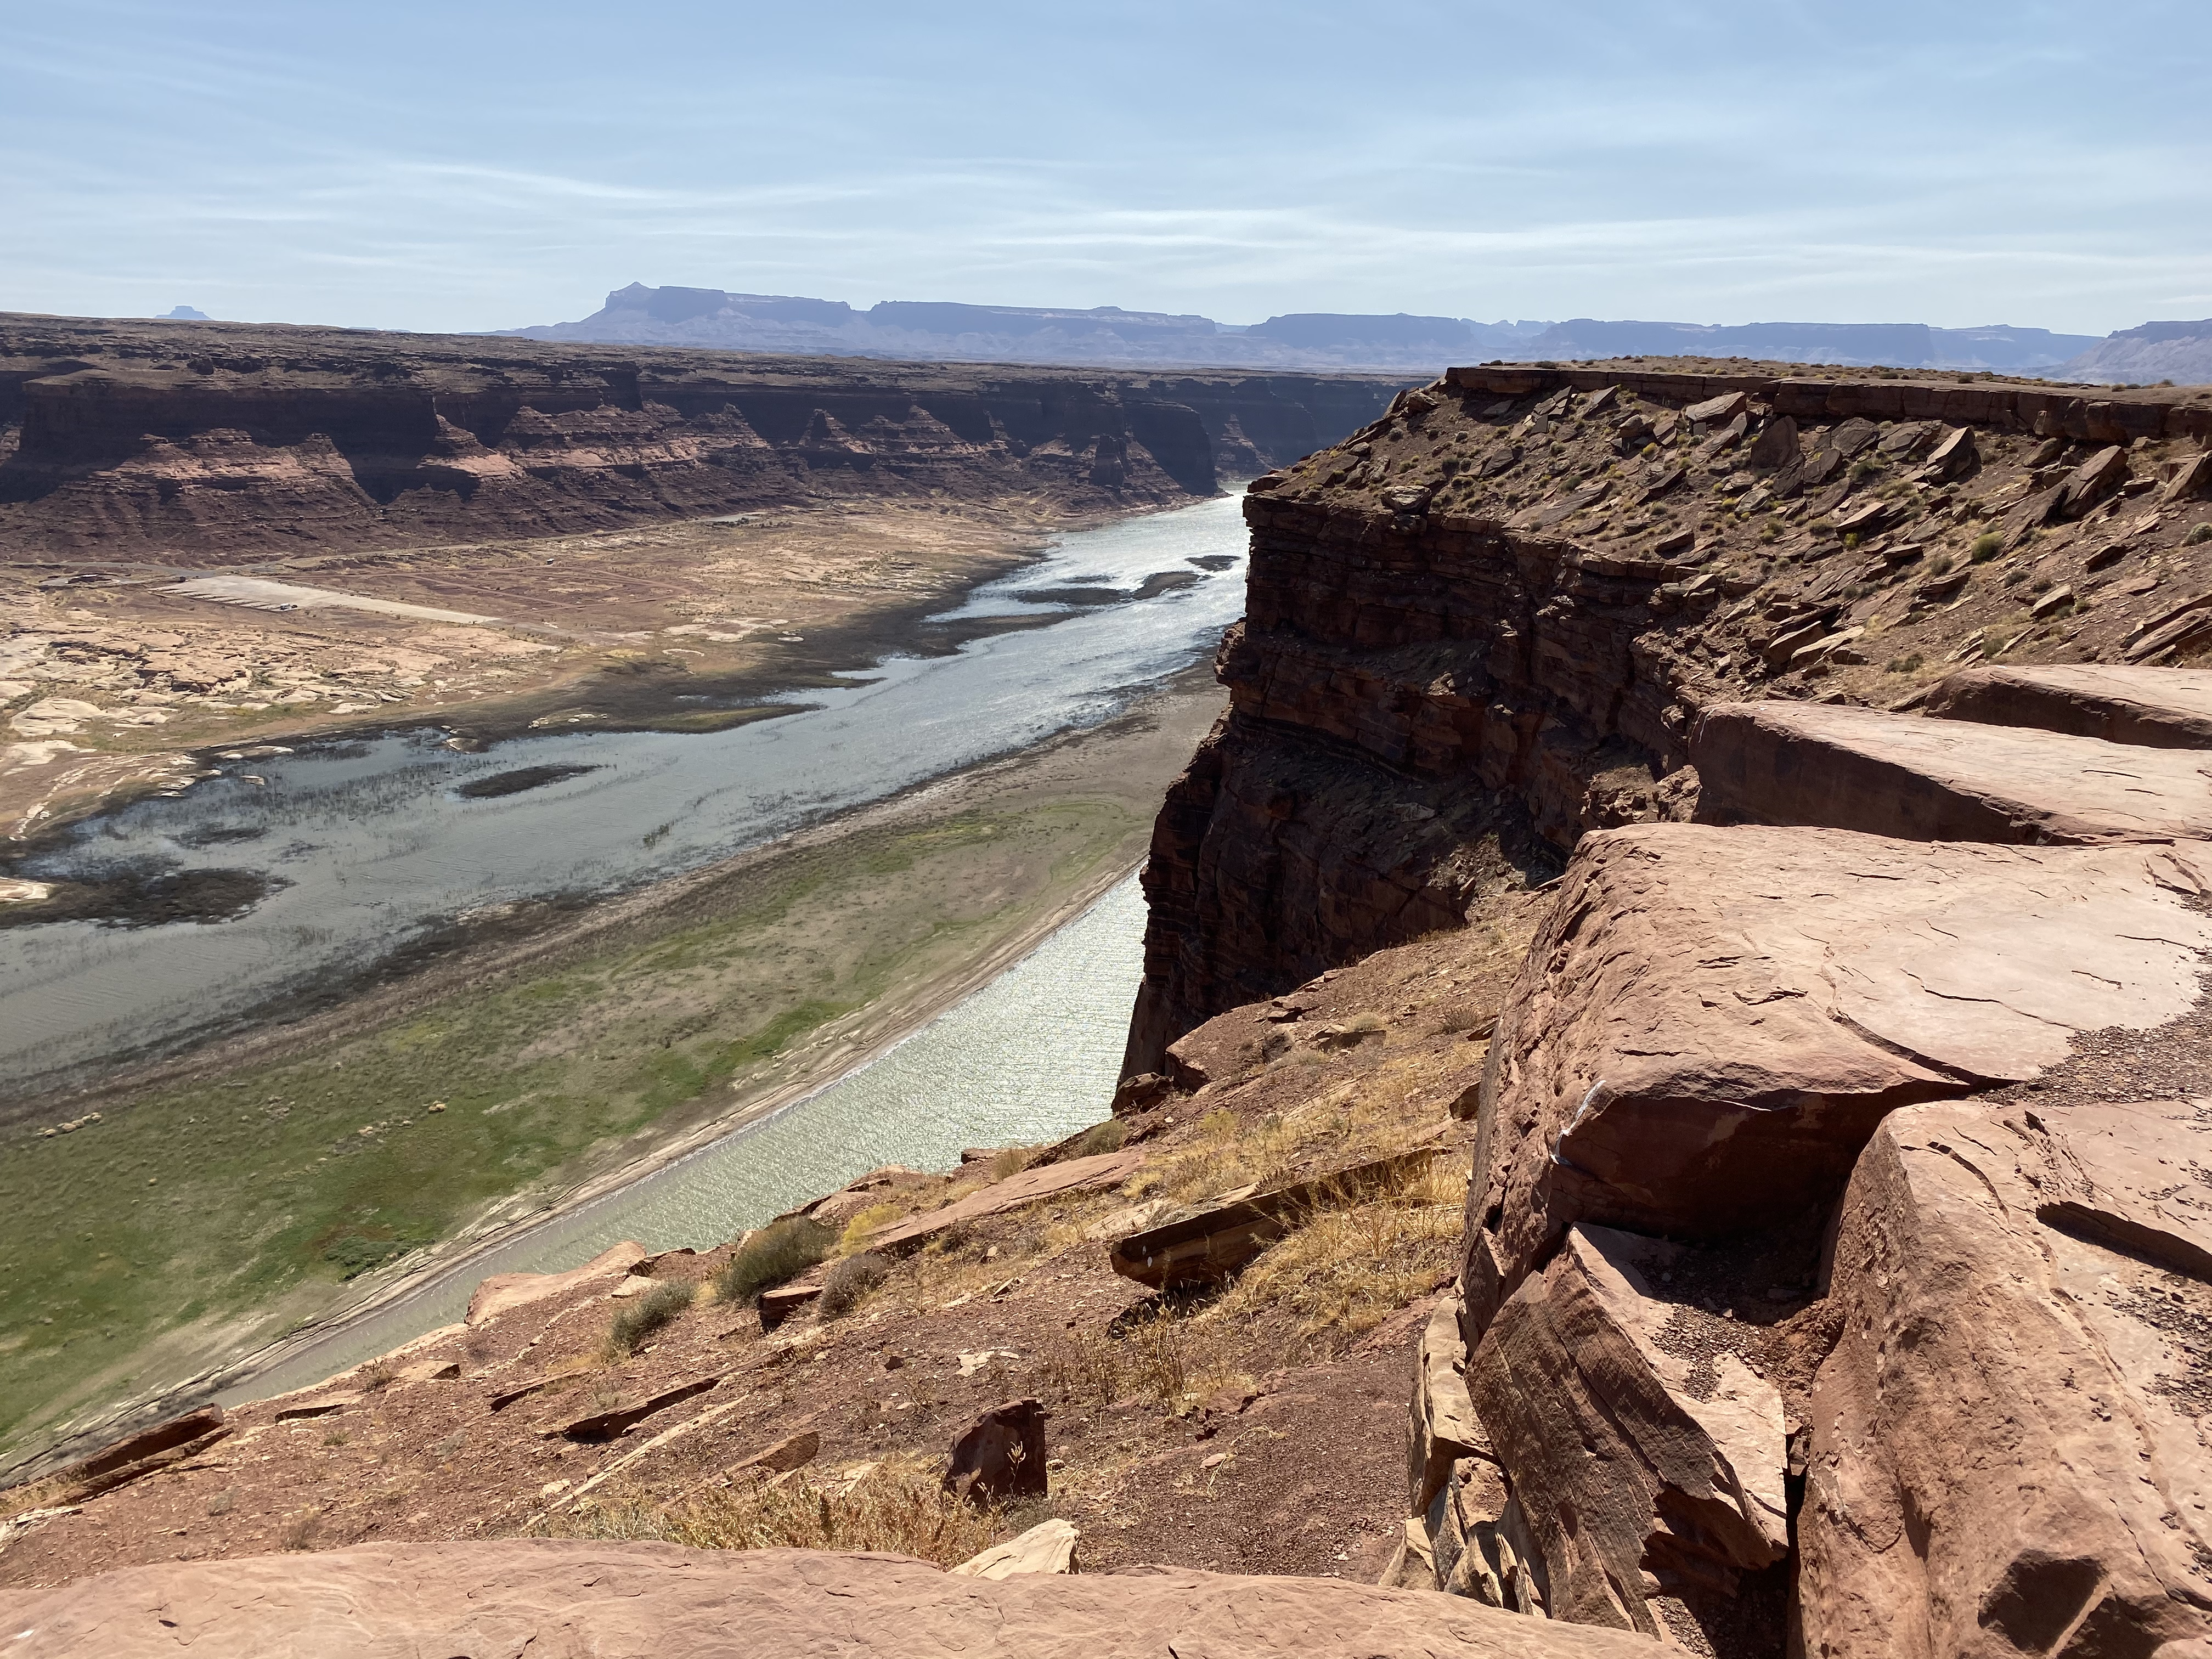 Colorado River downstream from the Hite Overlook.